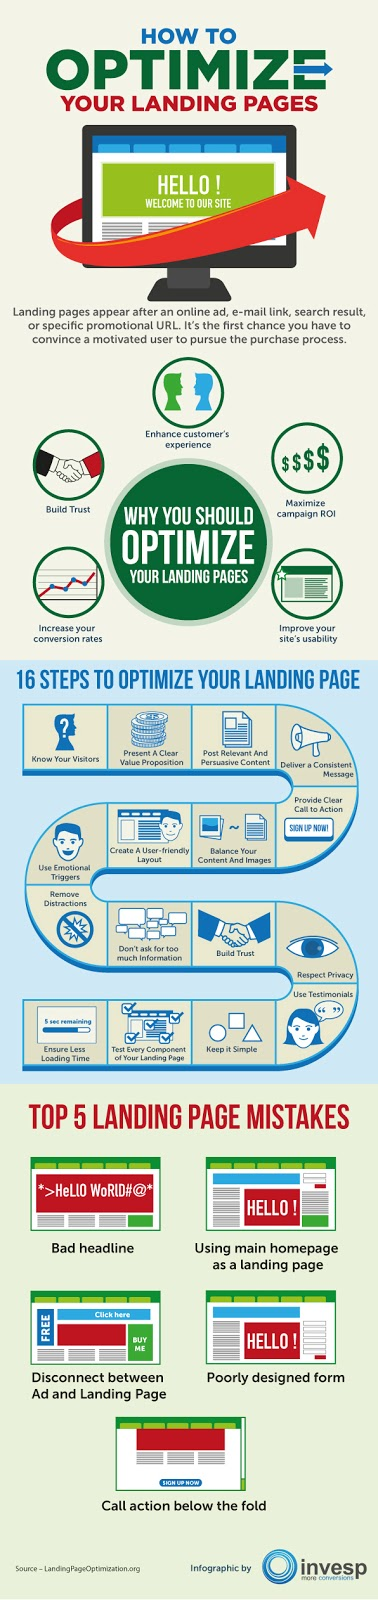 PPC Advertising Landing Page Optimization Tips